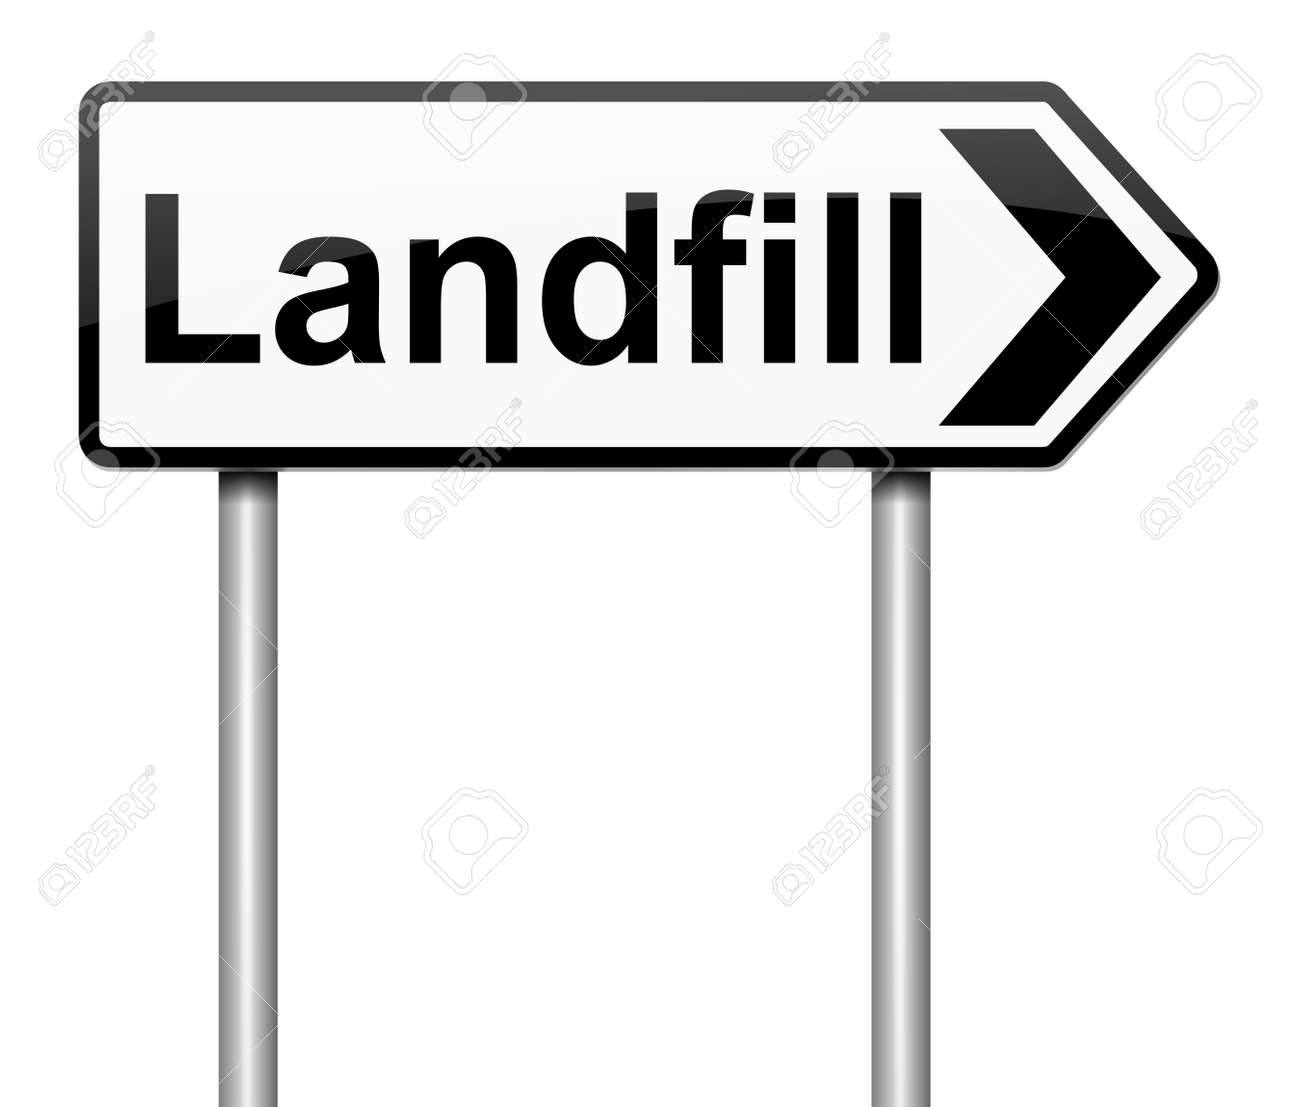 Image result for landfill sign image